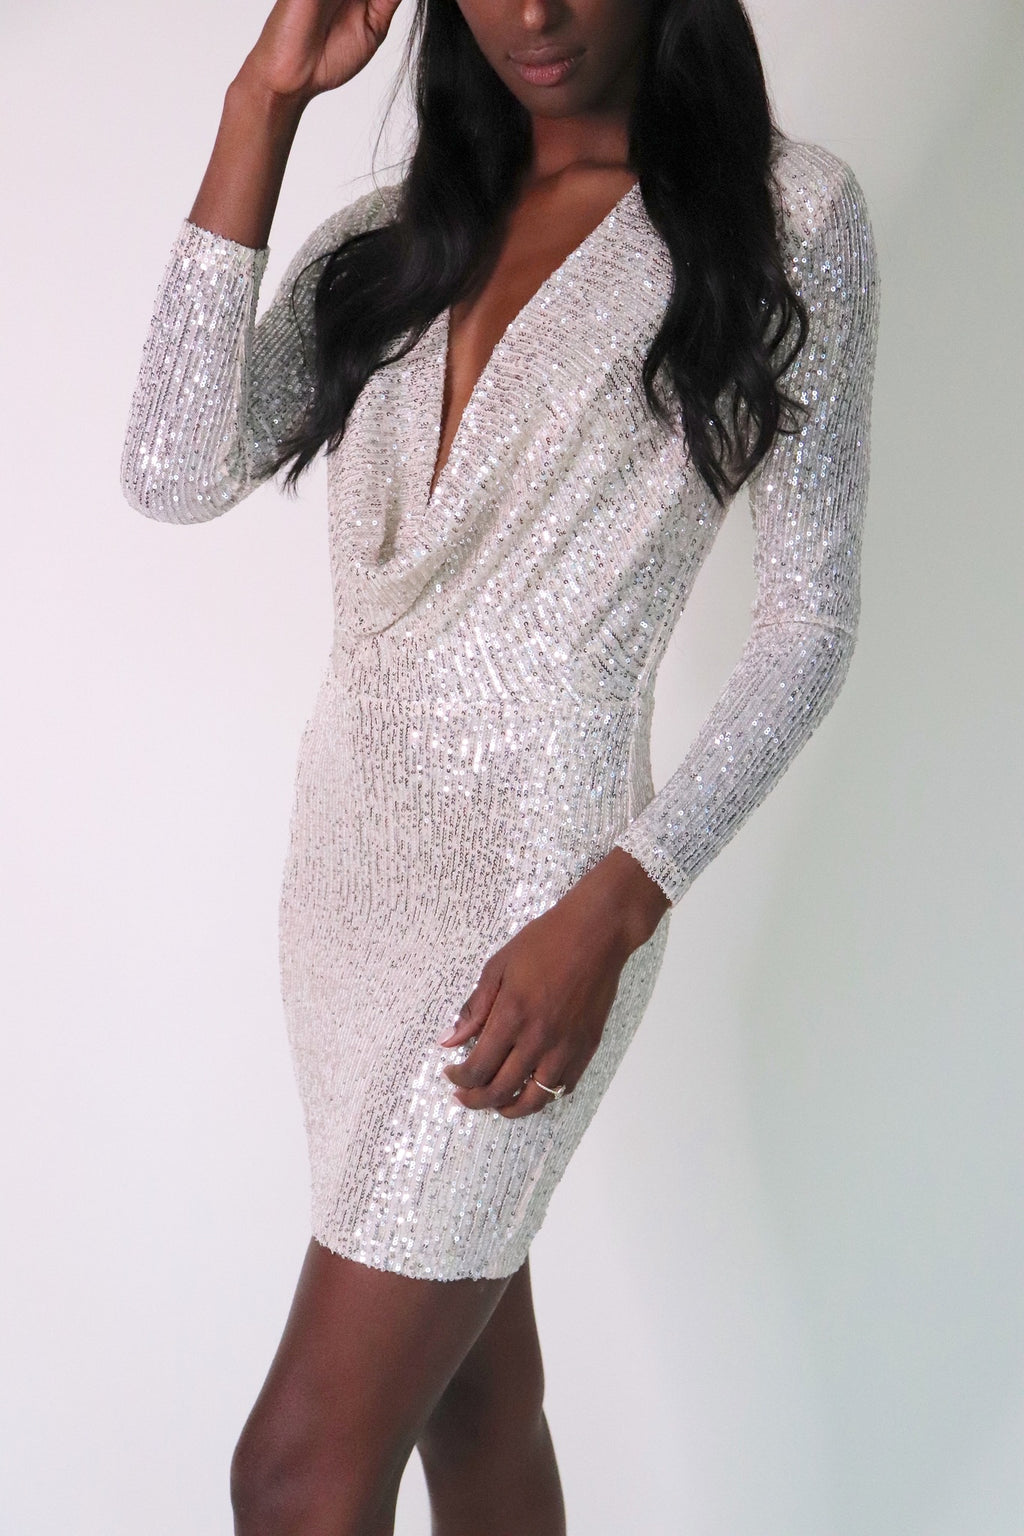 The Mandalay Sequin Dress